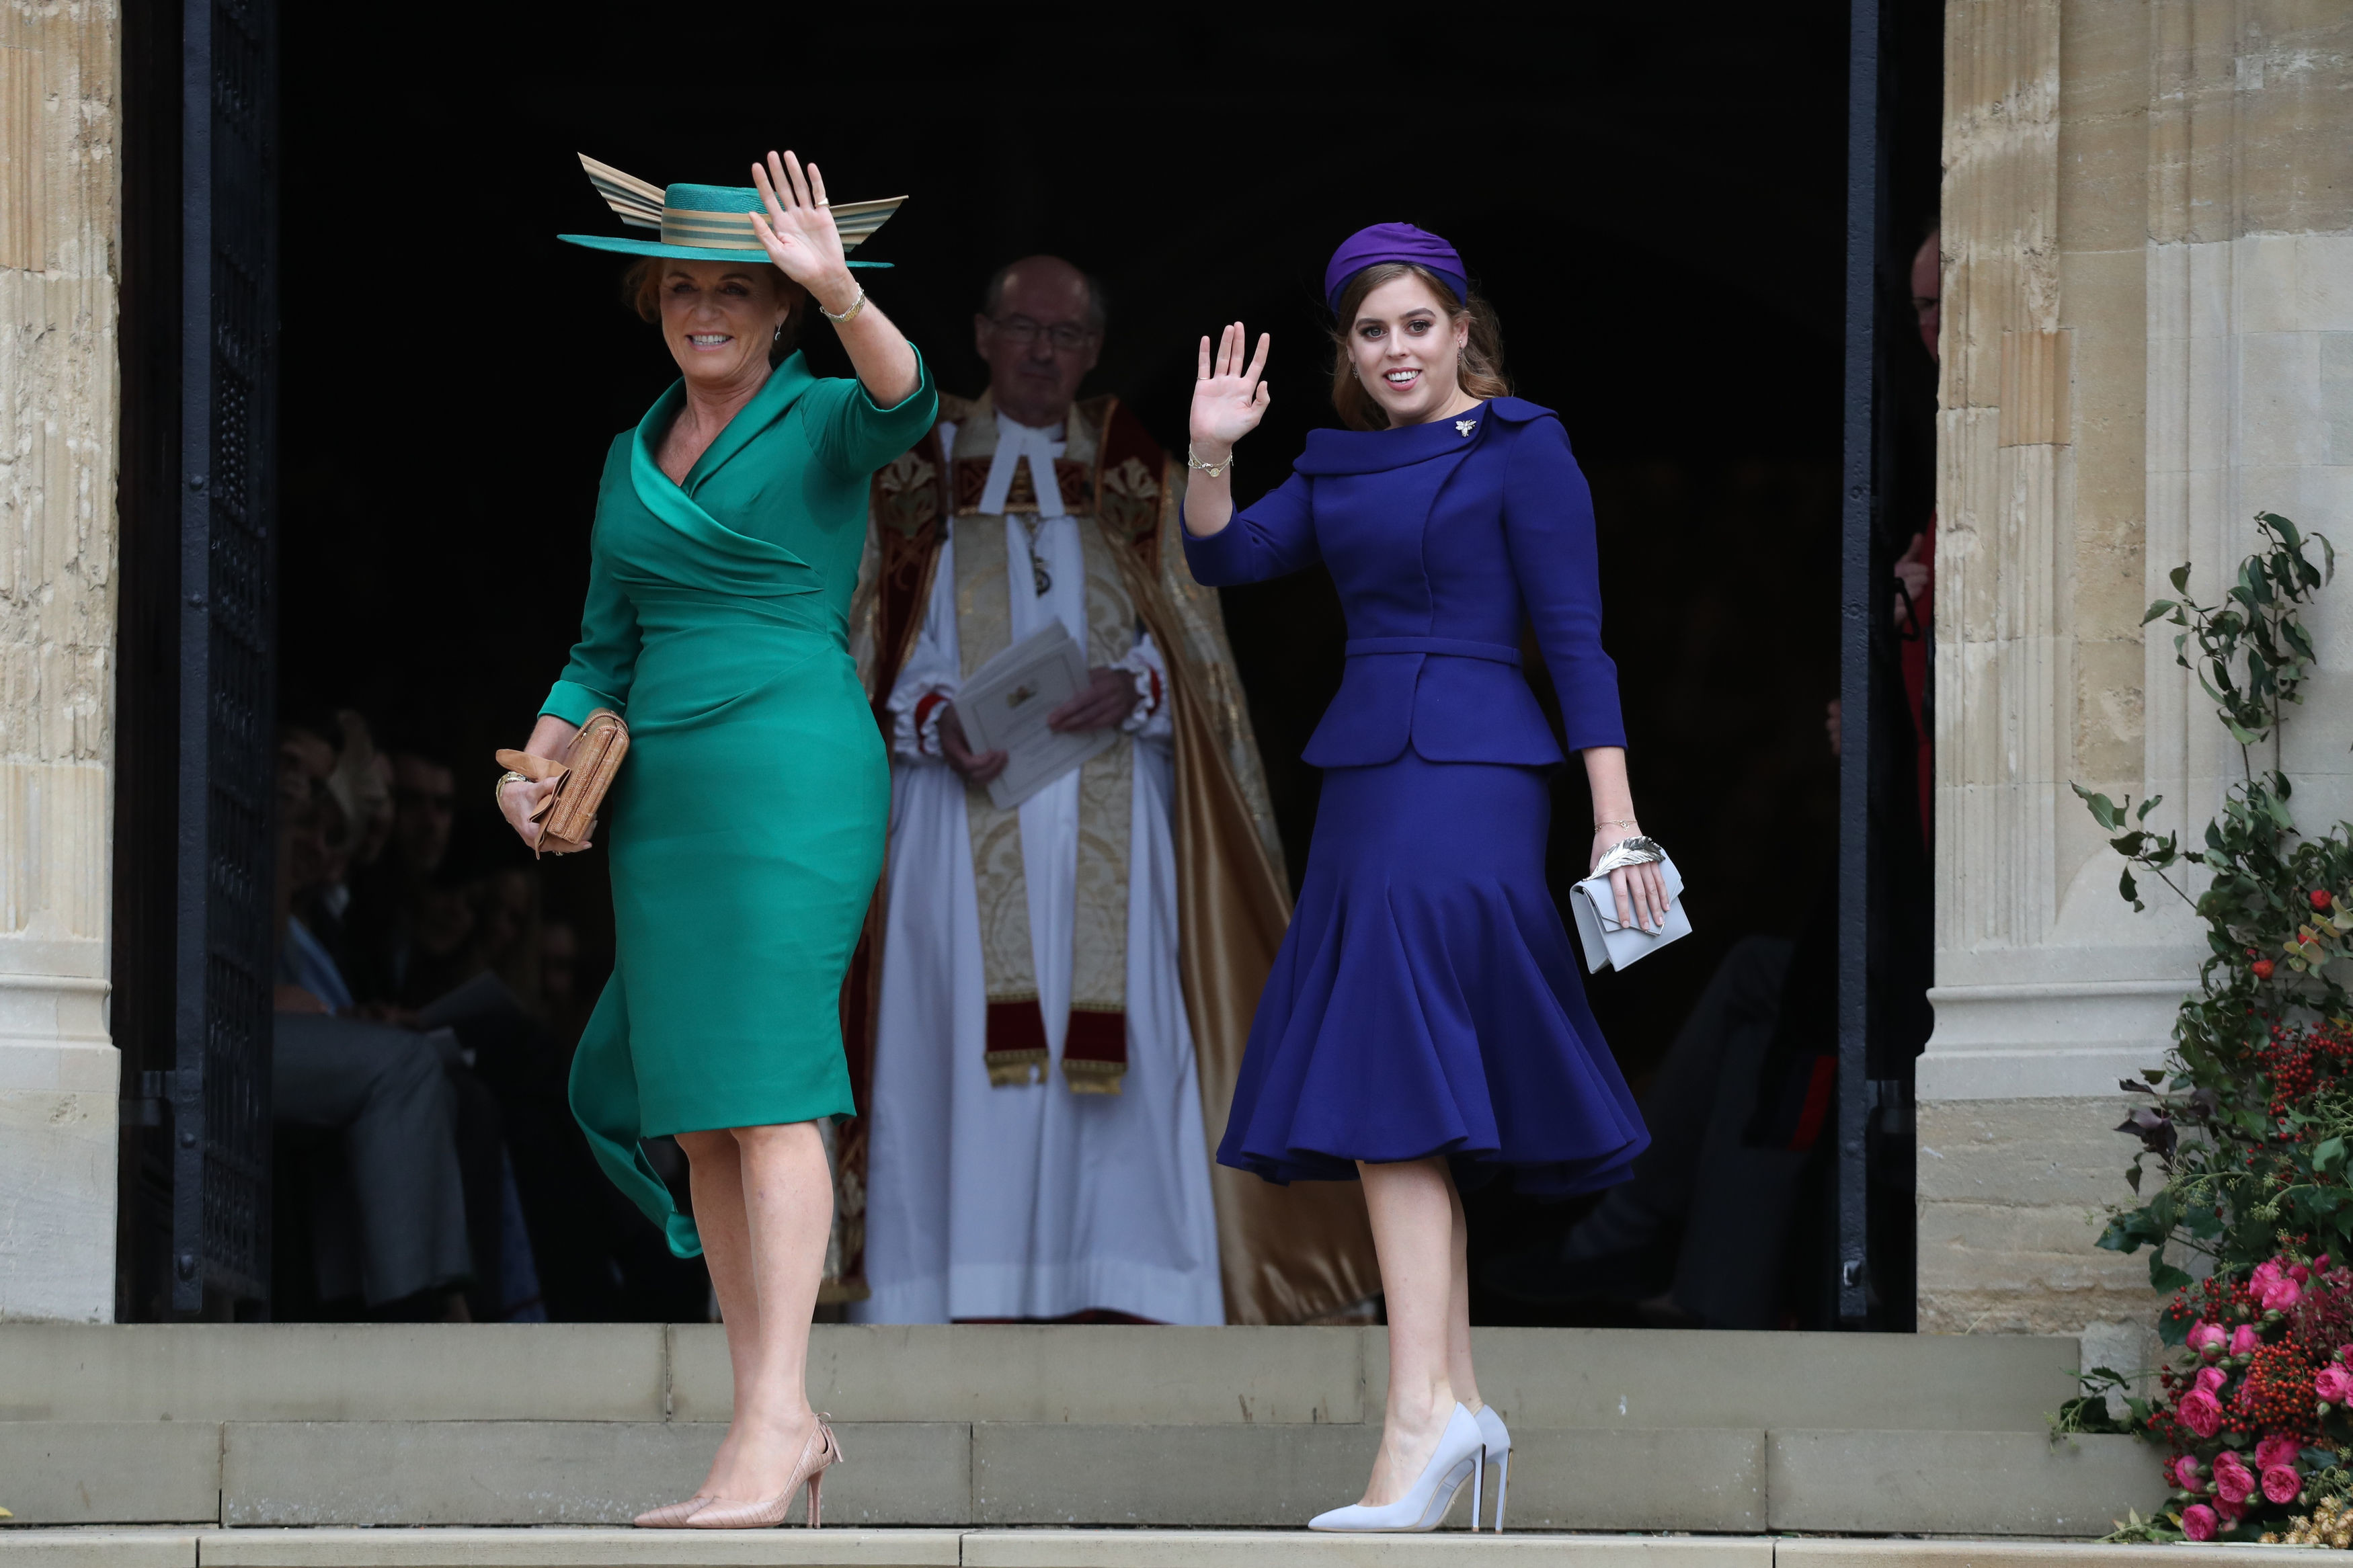 Why Sarah Ferguson Will Make Royal Wedding History When Princess Beatrice Gets Married Next Year